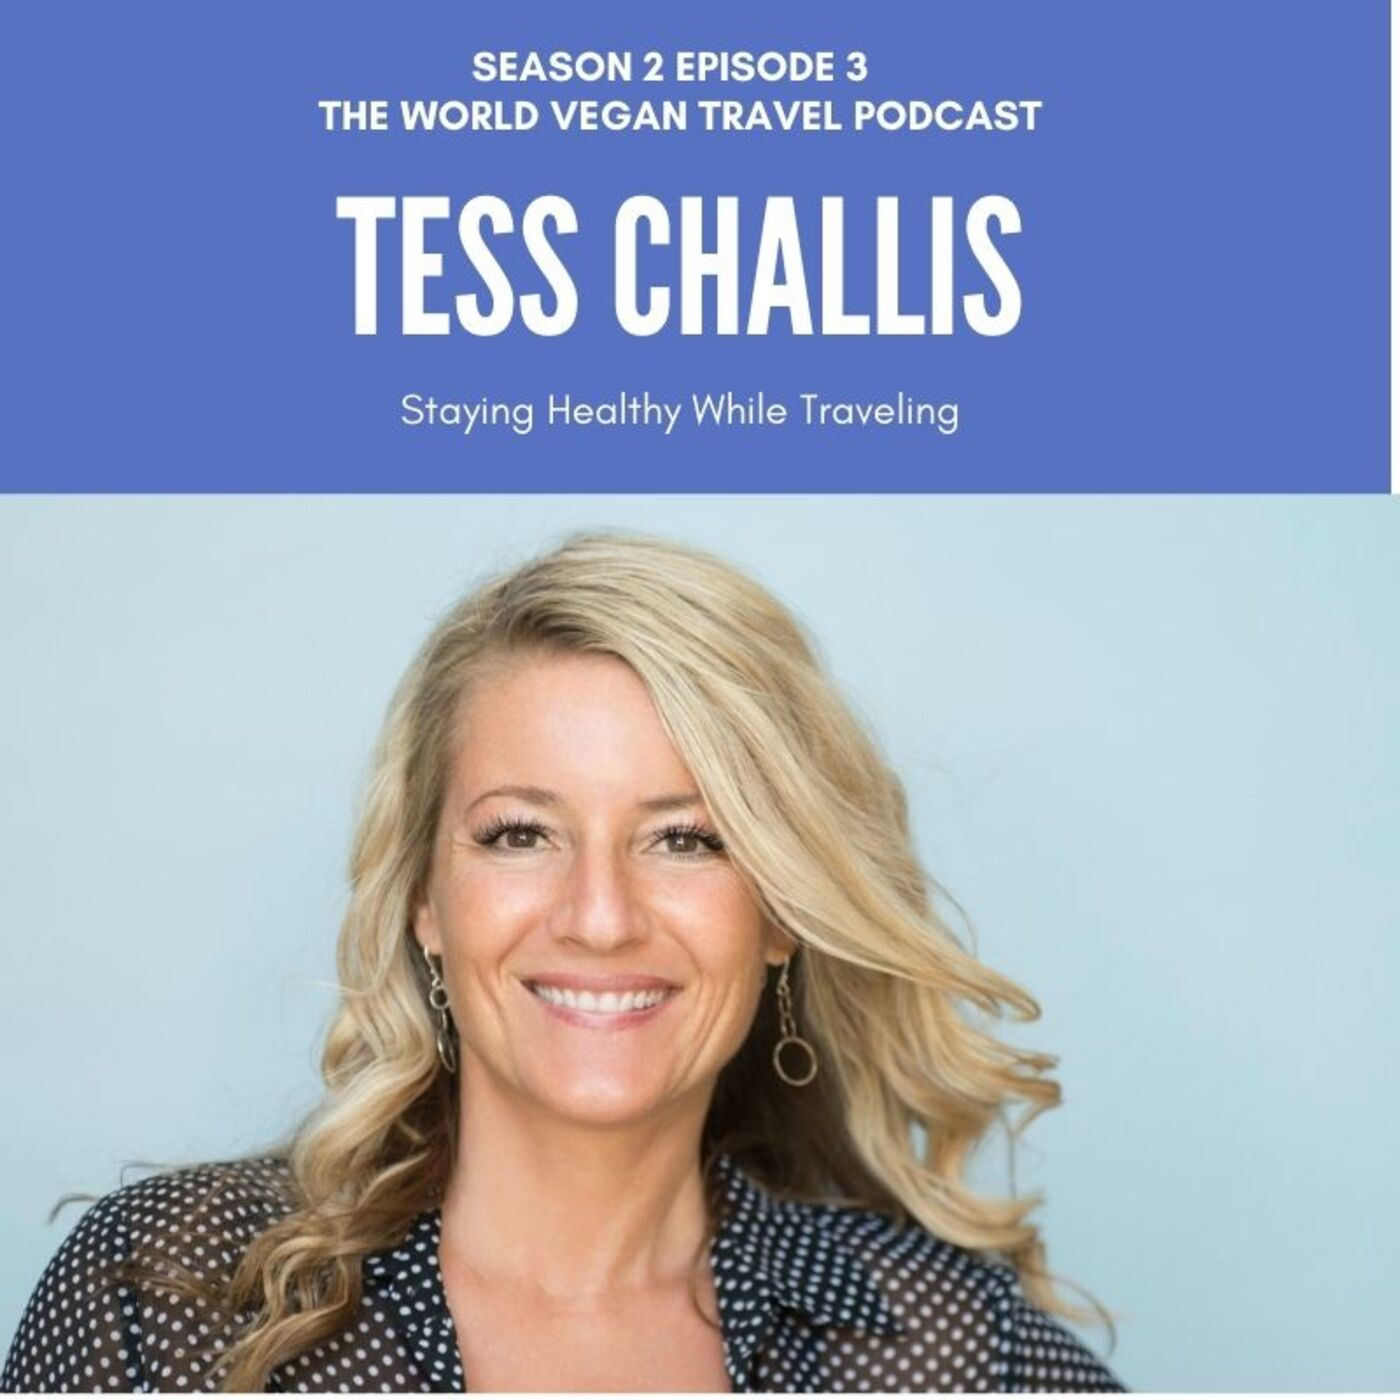 S2 Ep 3 | Staying Healthy While Traveling | Tess Challis